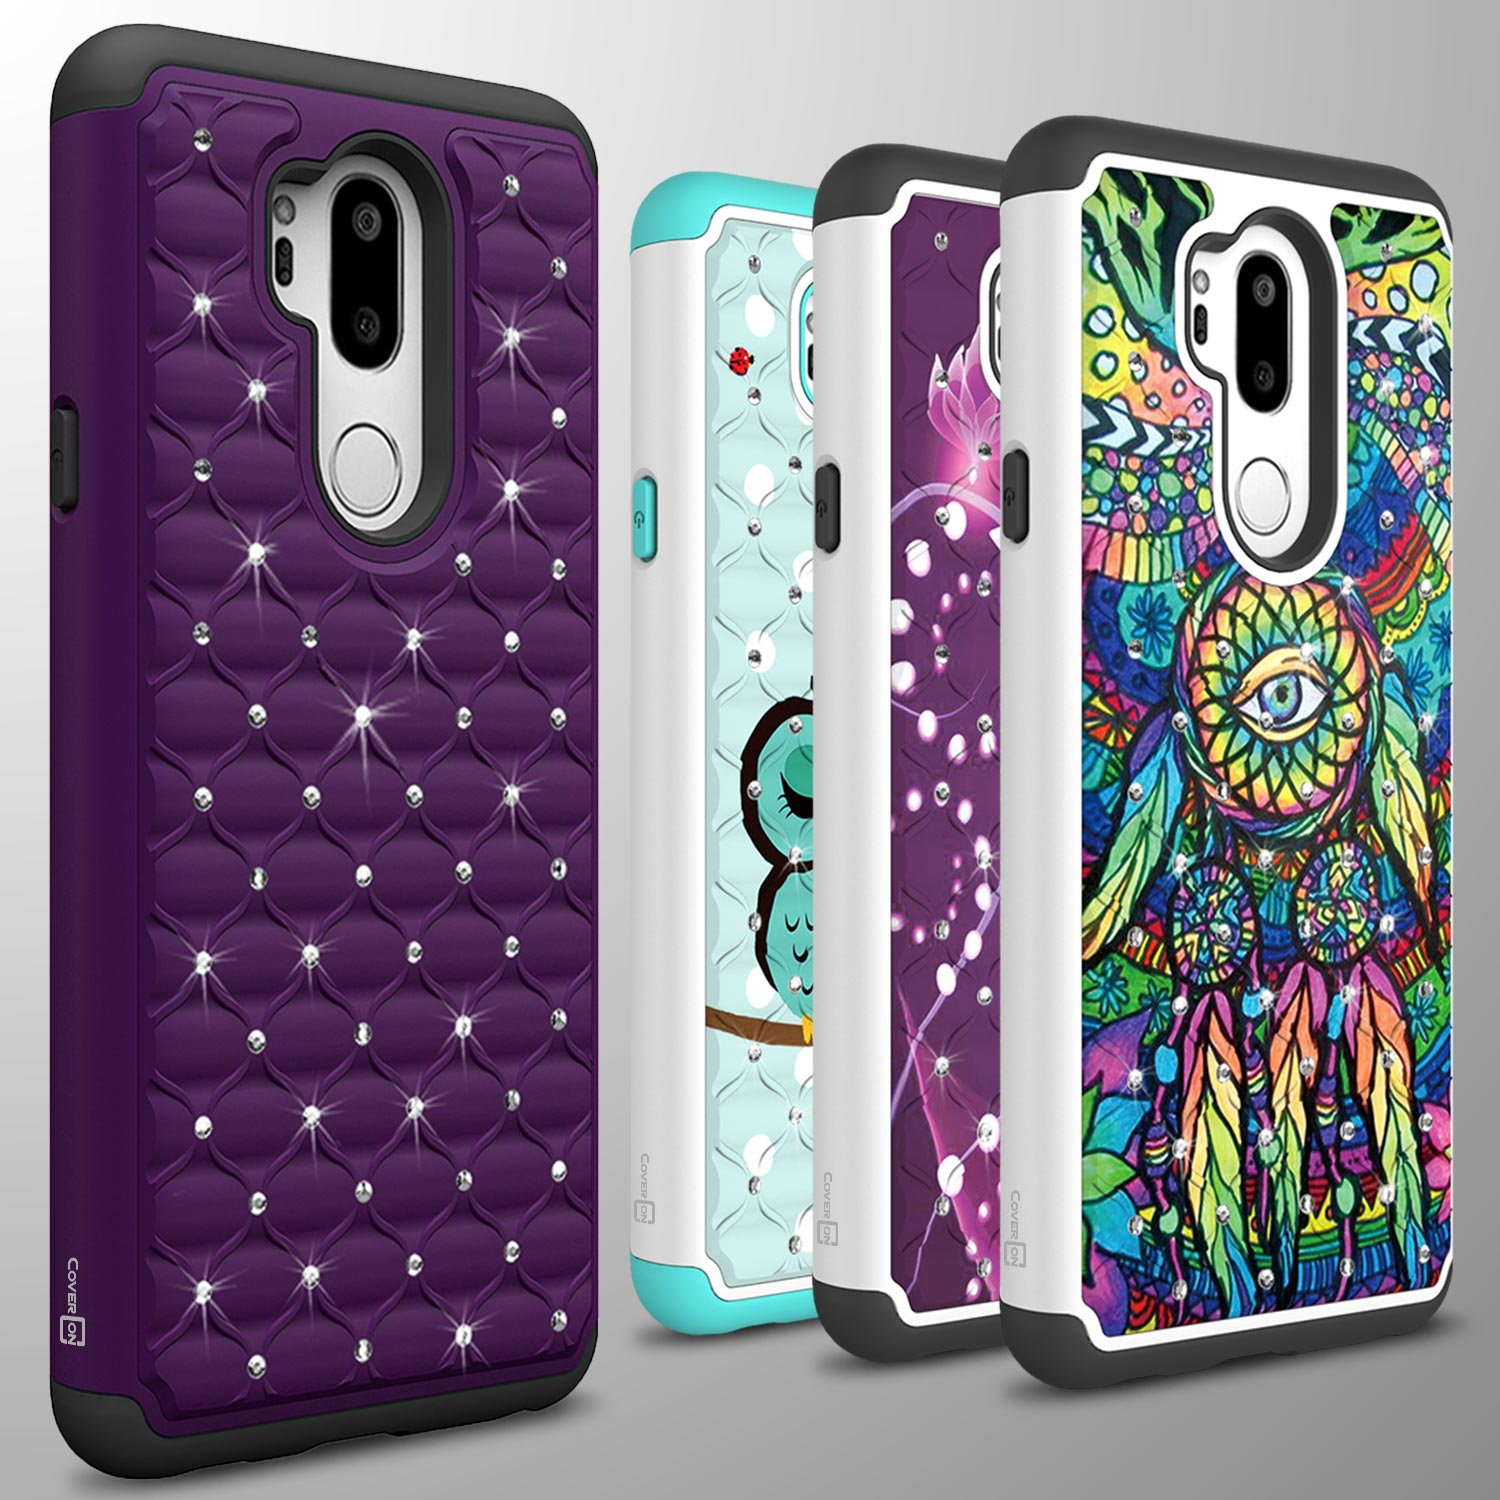 Details about For LG G7 ThinQ Case Diamond Bling Hybrid Tough Shockproof  Slim Phone Cover